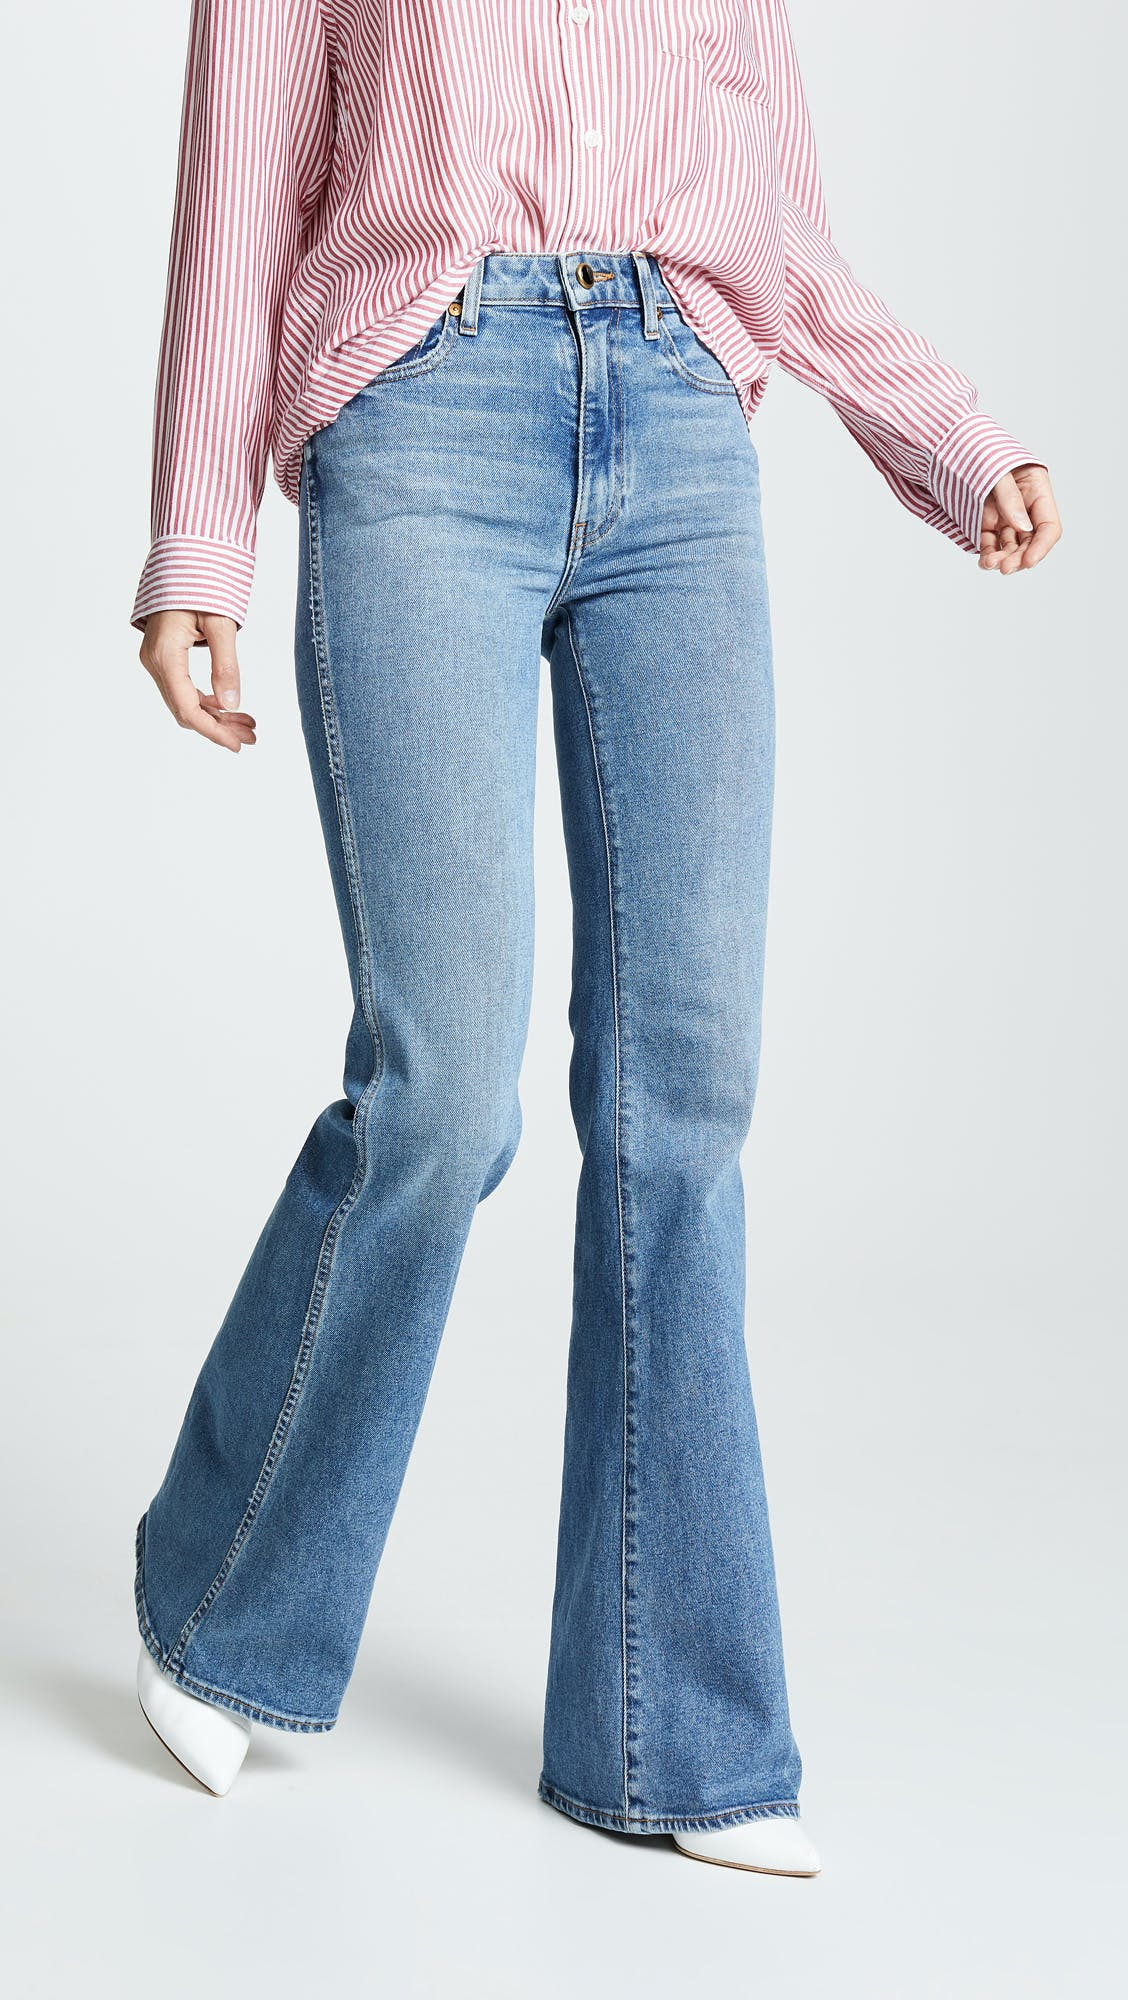 khaite jeans, flared jeans, wide leg jeans, high rise jeans, high waisted flares